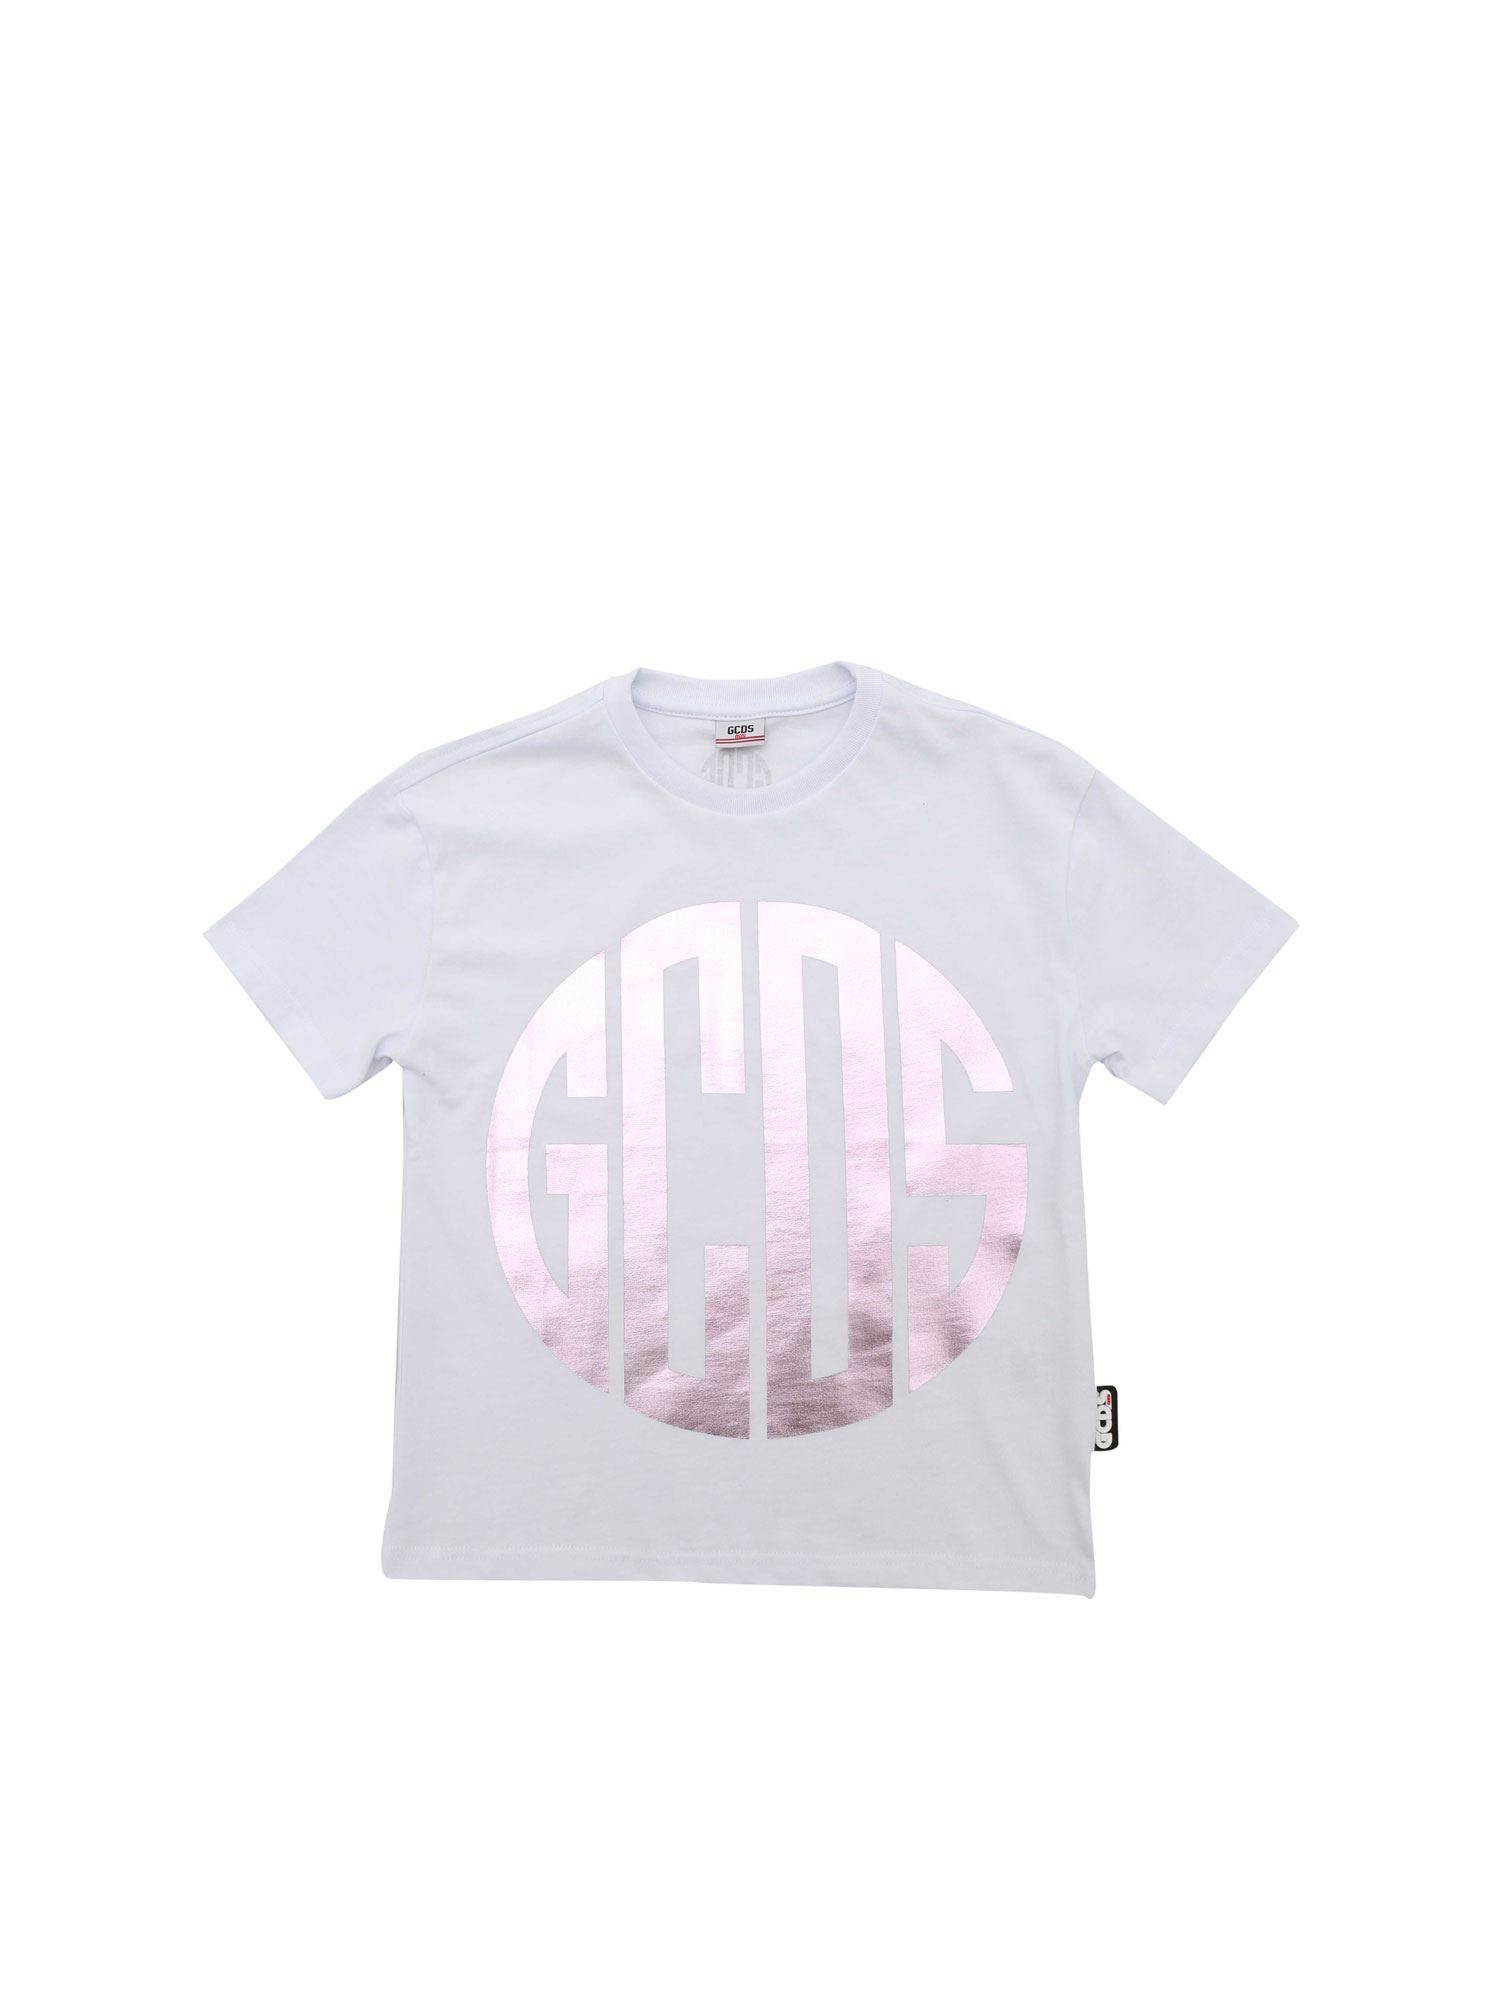 Gcds LAMINATED LOGO T-SHIRT IN WHITE